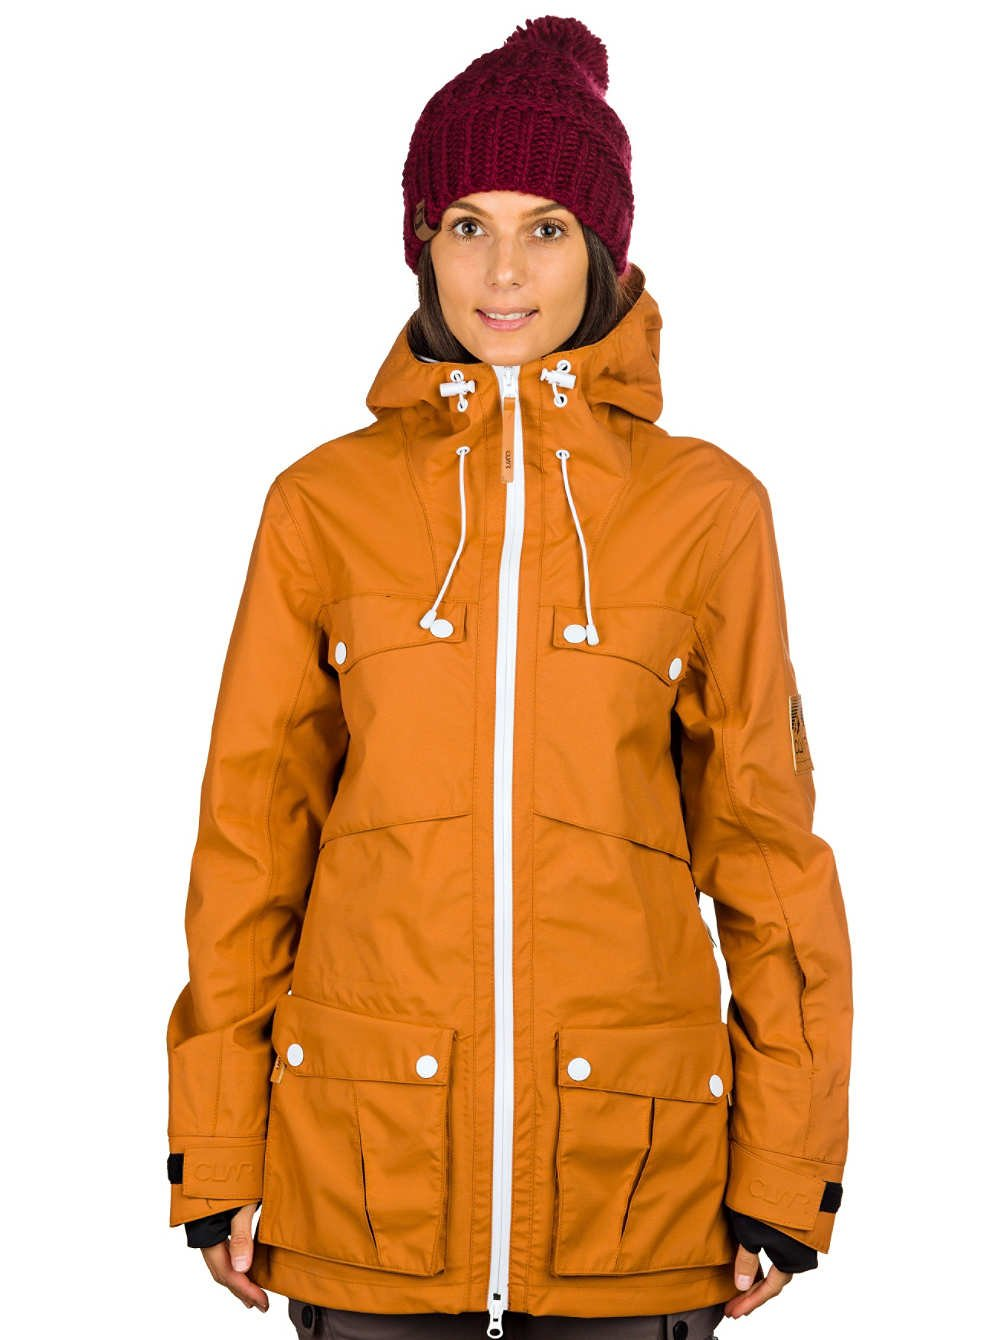 Damen Snowboard Jacke Colour Wear Lynx Jacket online kaufen